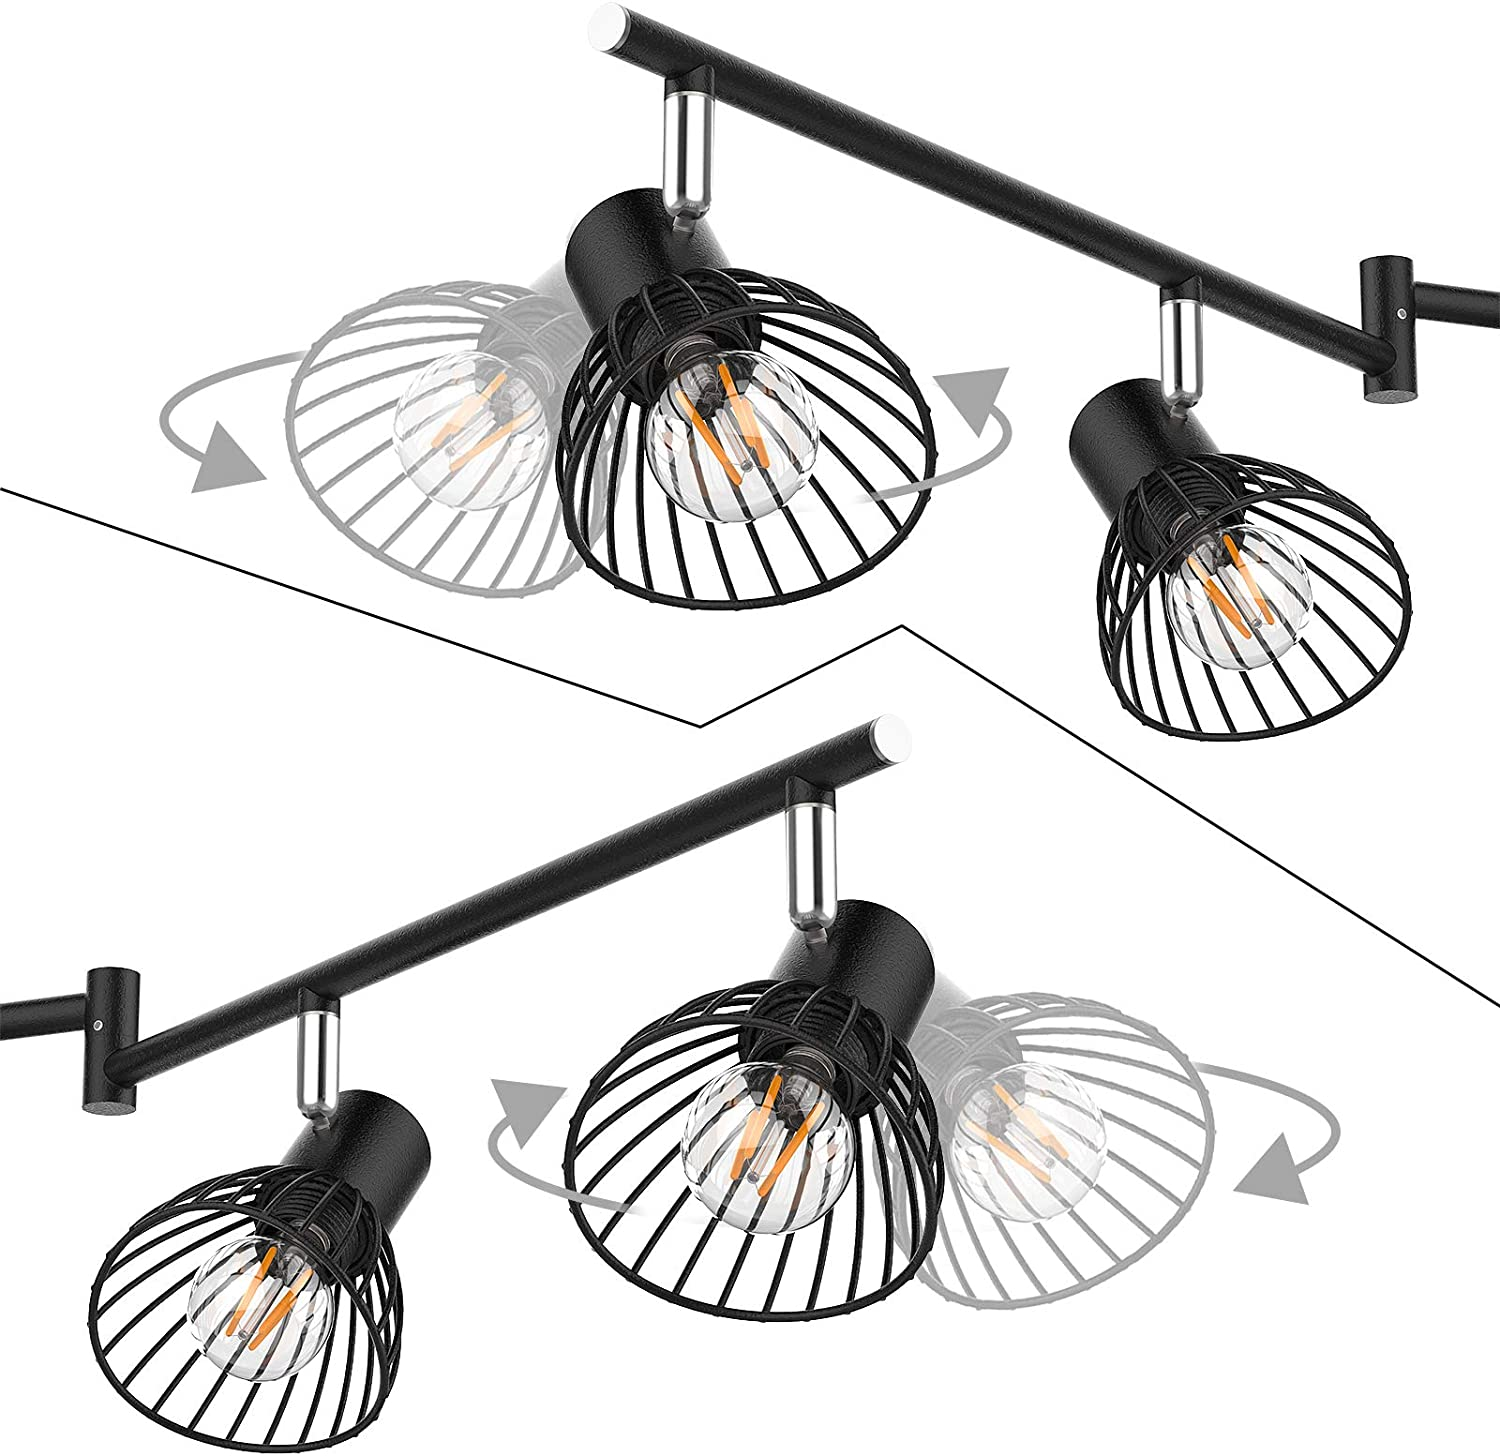 Complete with 4X 4W E14 LED Light Bulbs Uchrolls LED Ceiling Light,Height Adjustable,4 Way Modern Ceiling Spotlight for Kitchen Living Room and Bedroom 420LM, Warm White